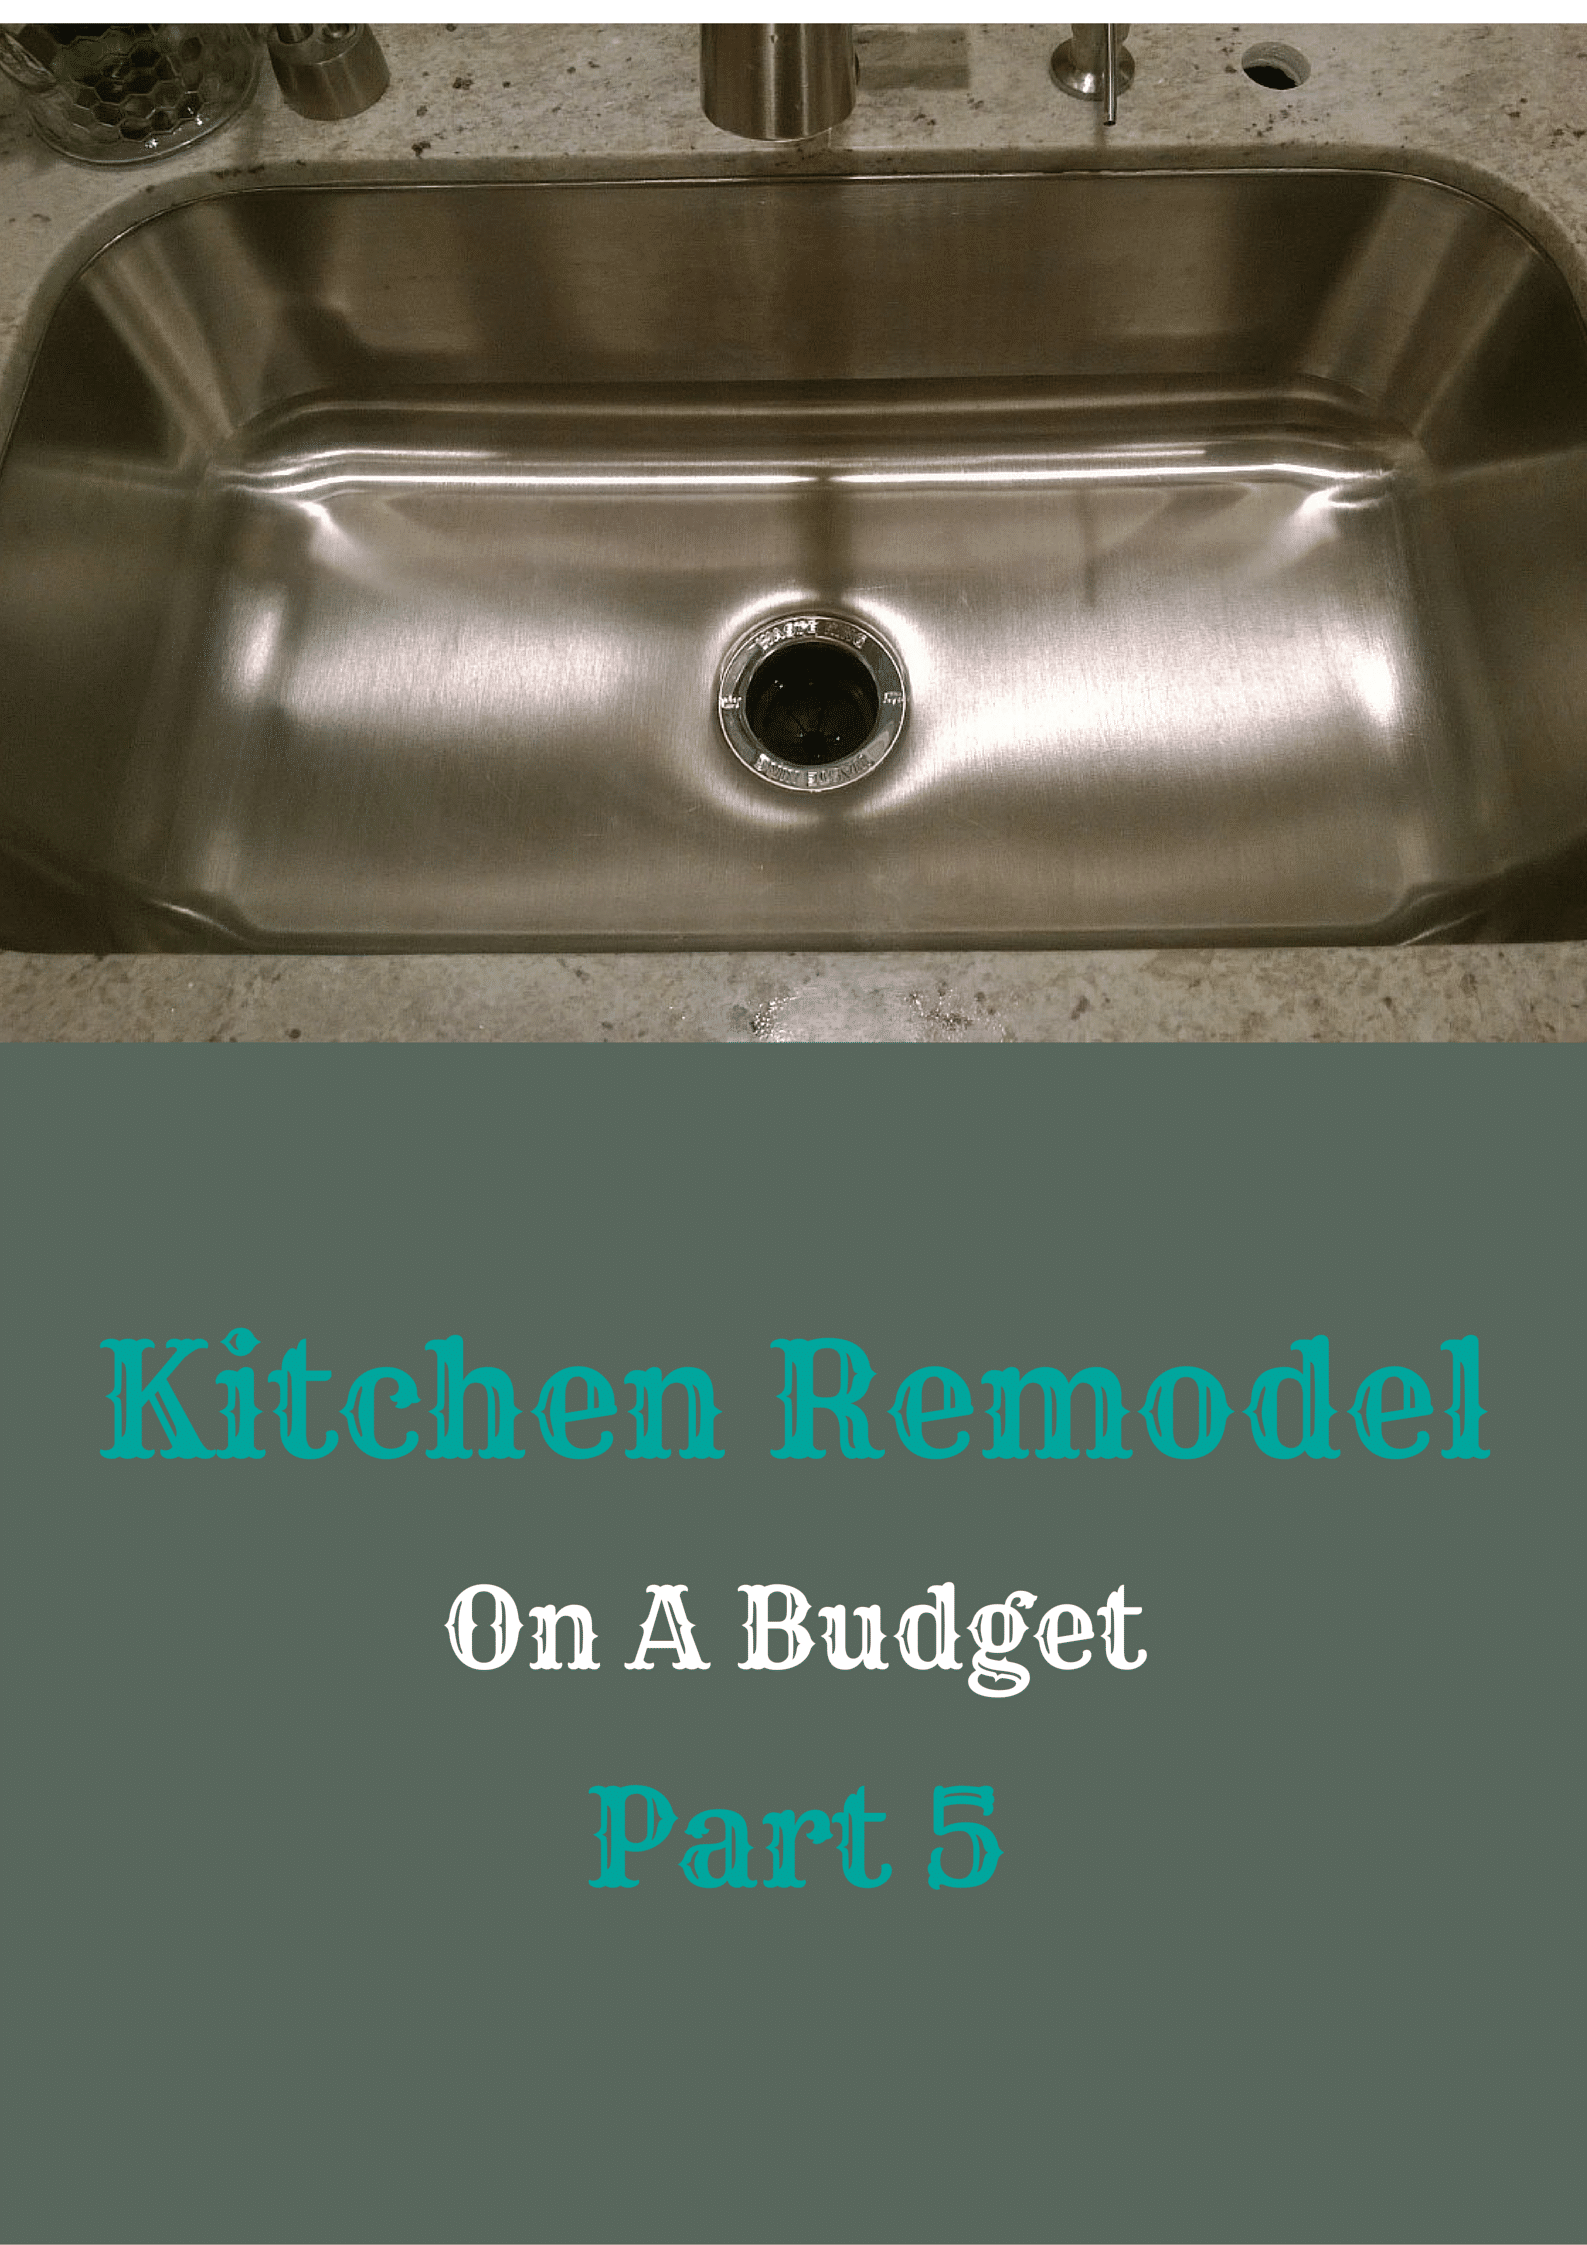 Five big ticket items to budget for in your kitchen for Garden renovation on a budget